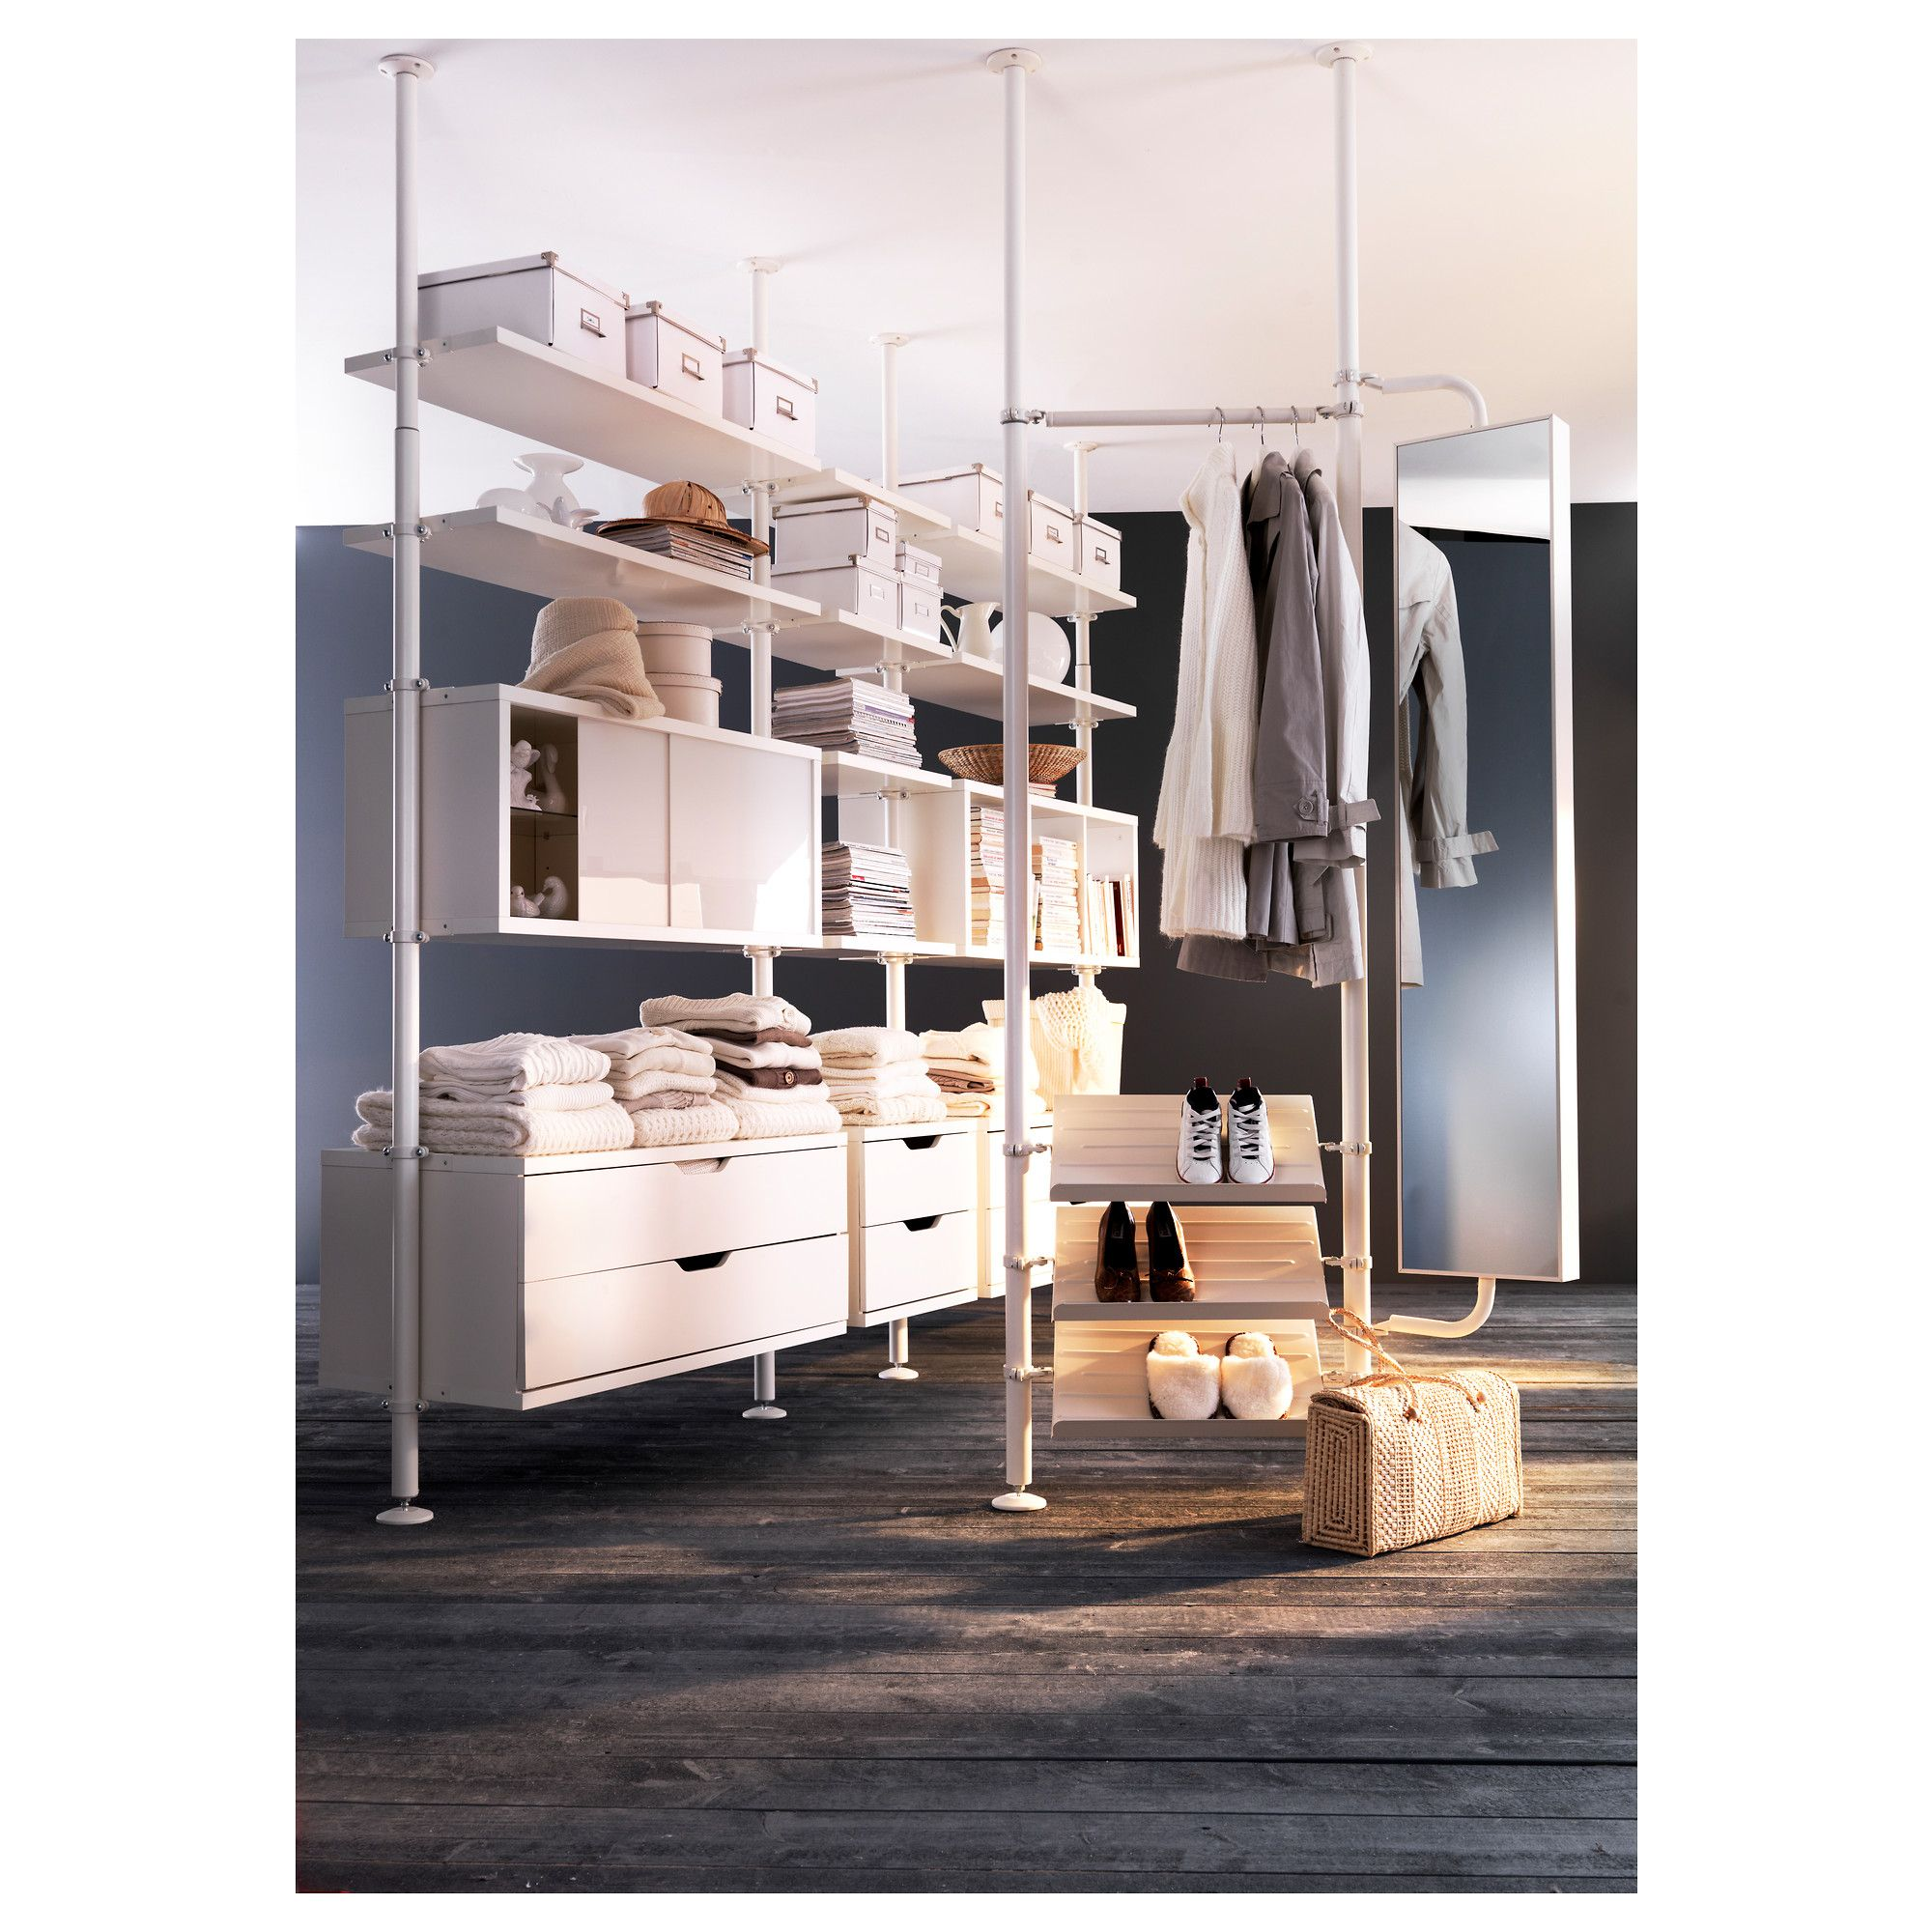 Open Closets Small Spaces Hstfibbla Cushion Multicolor Retail Design Study Rooms And